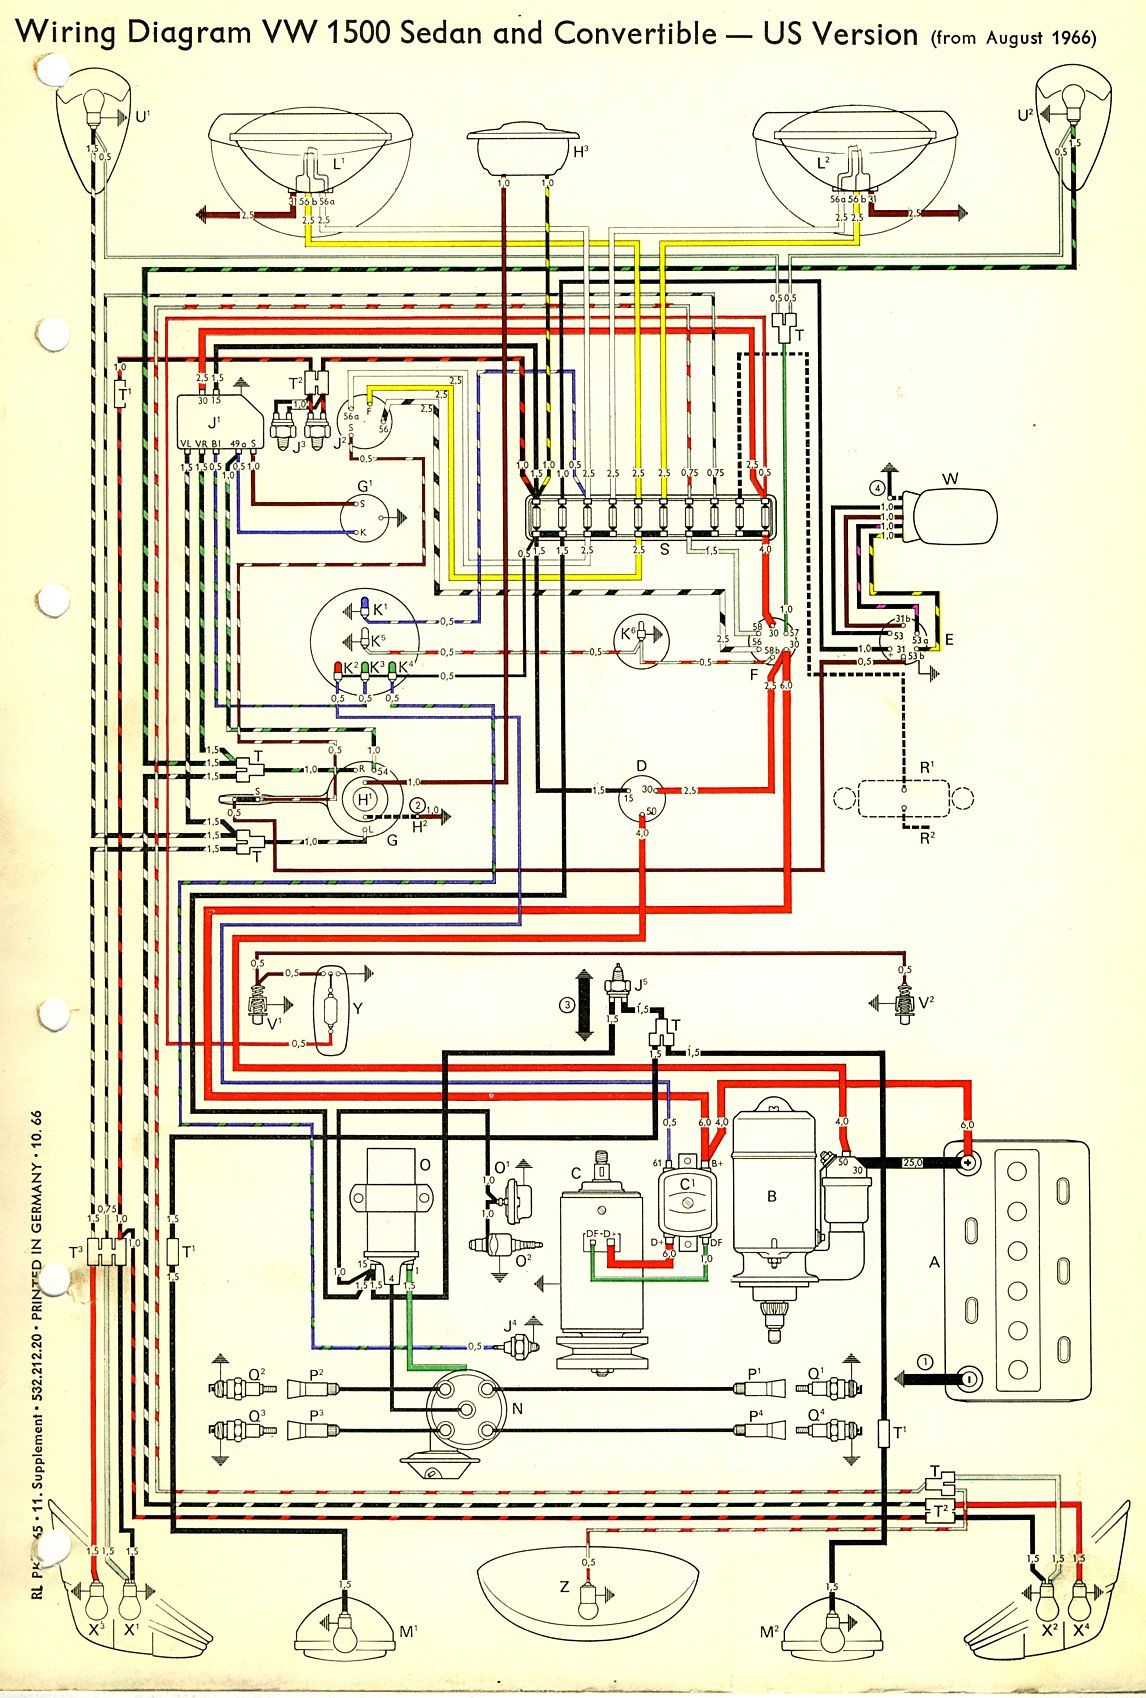 1adf990c0efb617c789fdd21338448b0 1967 beetle wiring diagram (usa) thegoldenbug com best 1967 vw vw beetle 2002 radio wiring diagram at crackthecode.co